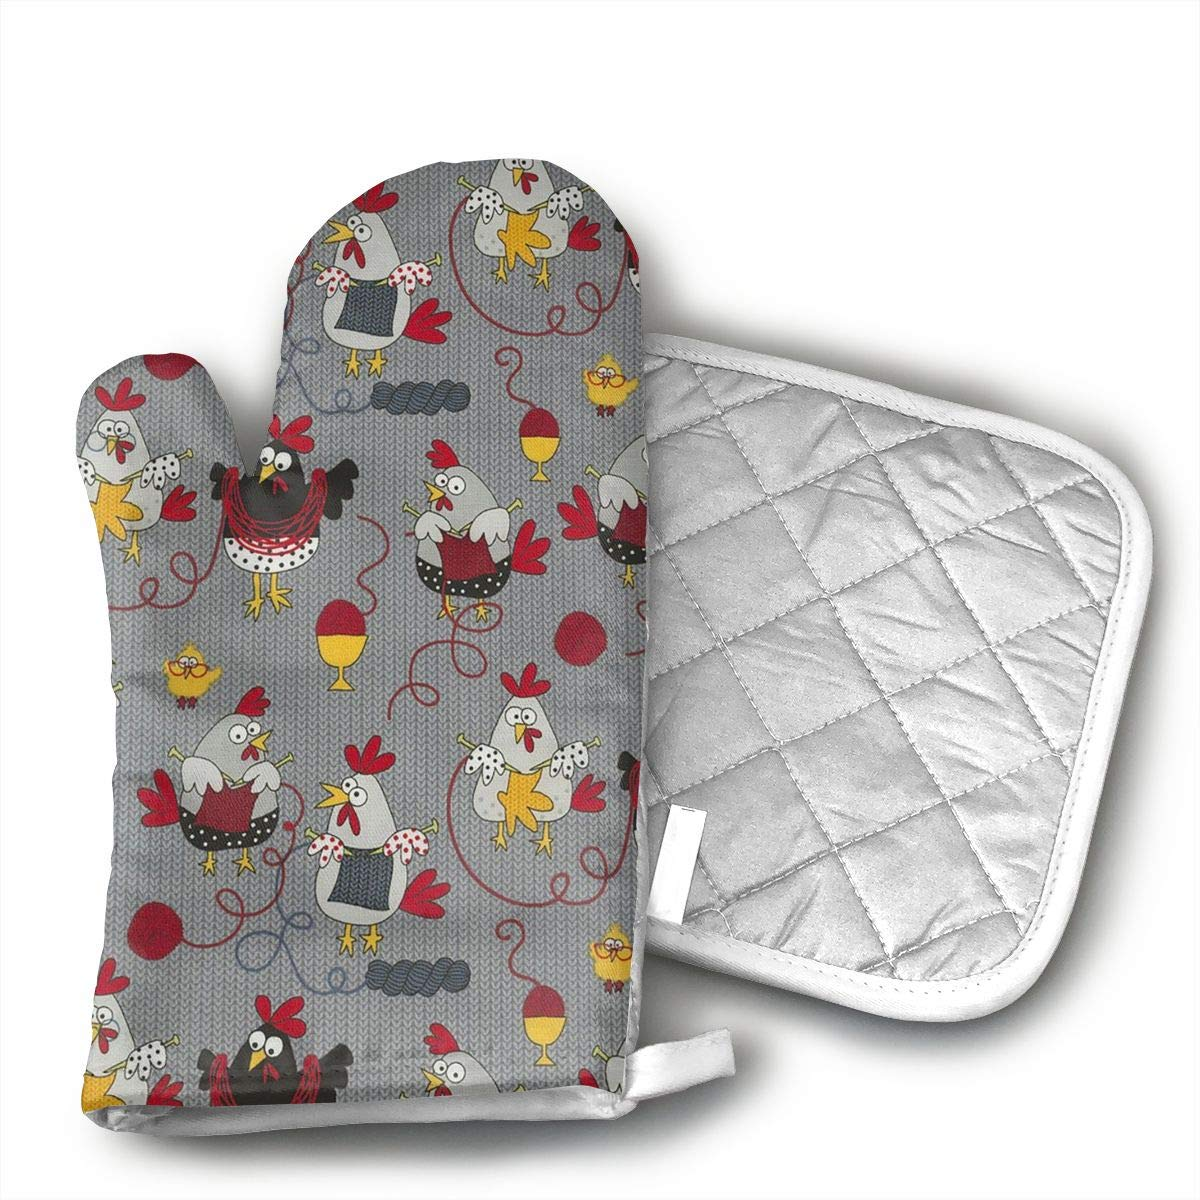 Star Blue Design Red Chicken Grey Oven Mitts & Heat Resistant Pot Holder - with Polyester Cotton Non-Slip Grip, Best Used As Baking, Grilling, BBQ, Cooking, Kitchen Or Oven Gloves